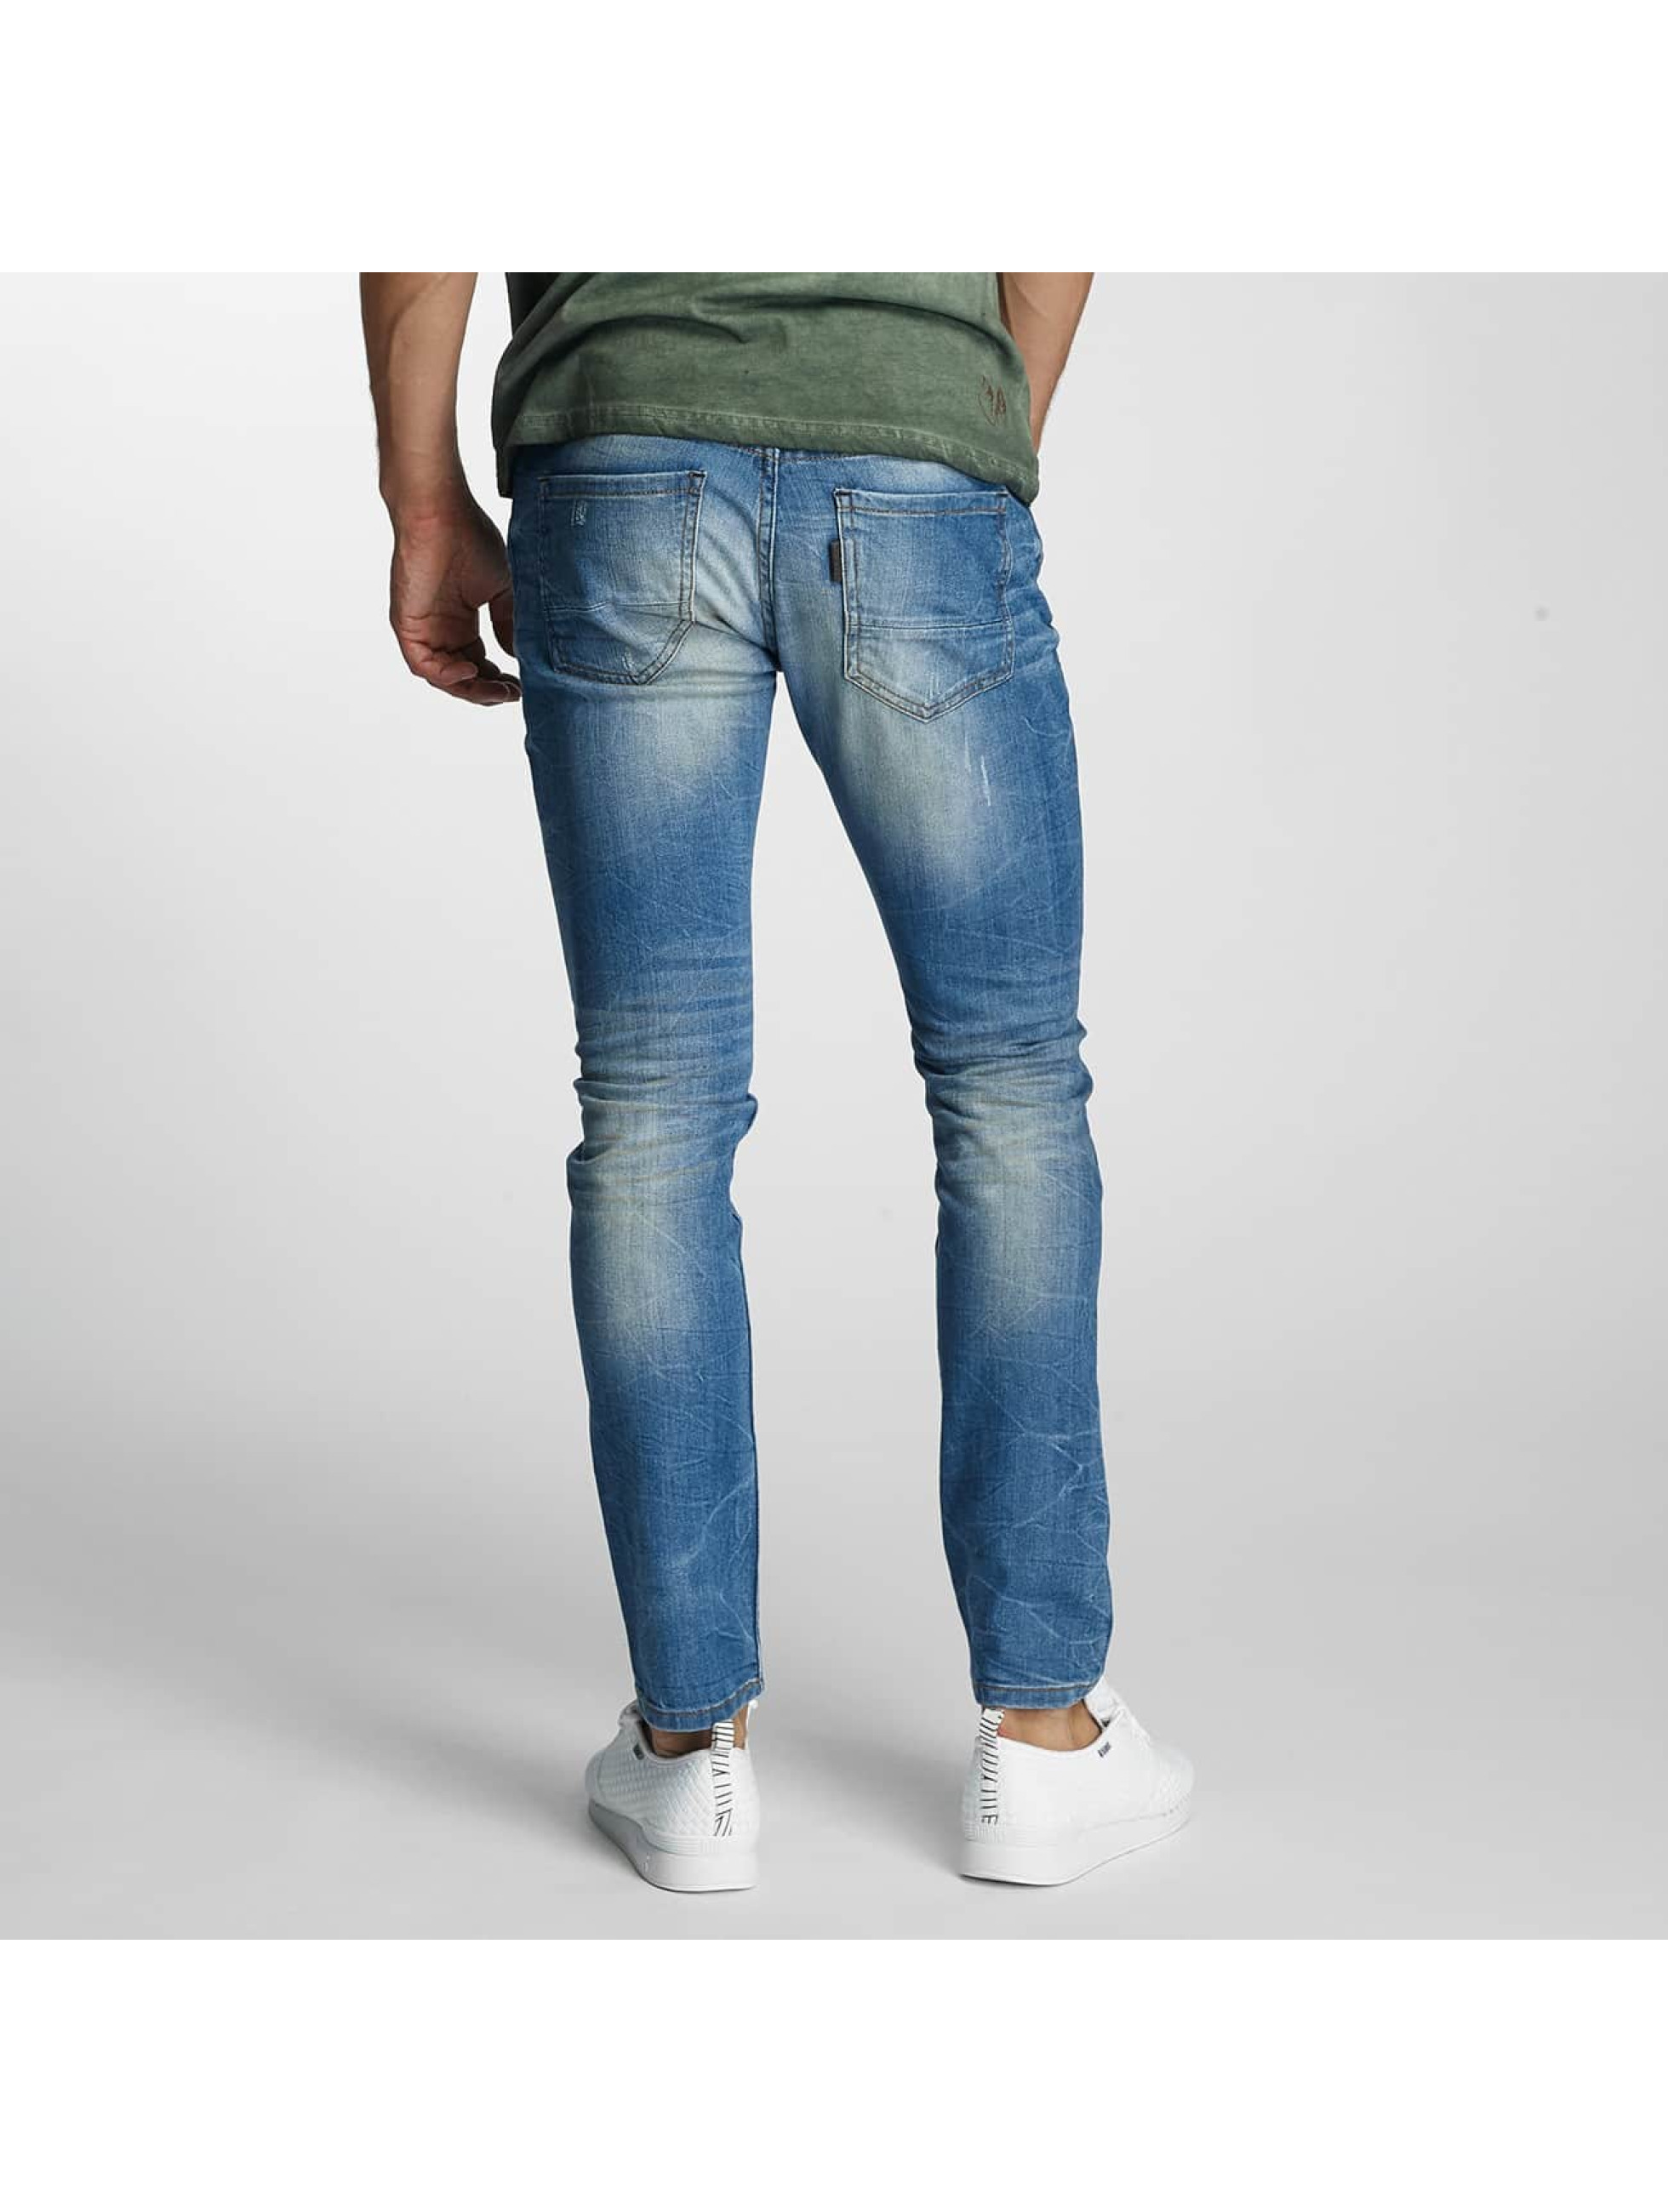 Paris Premium Straight Fit Jeans Dirt blue